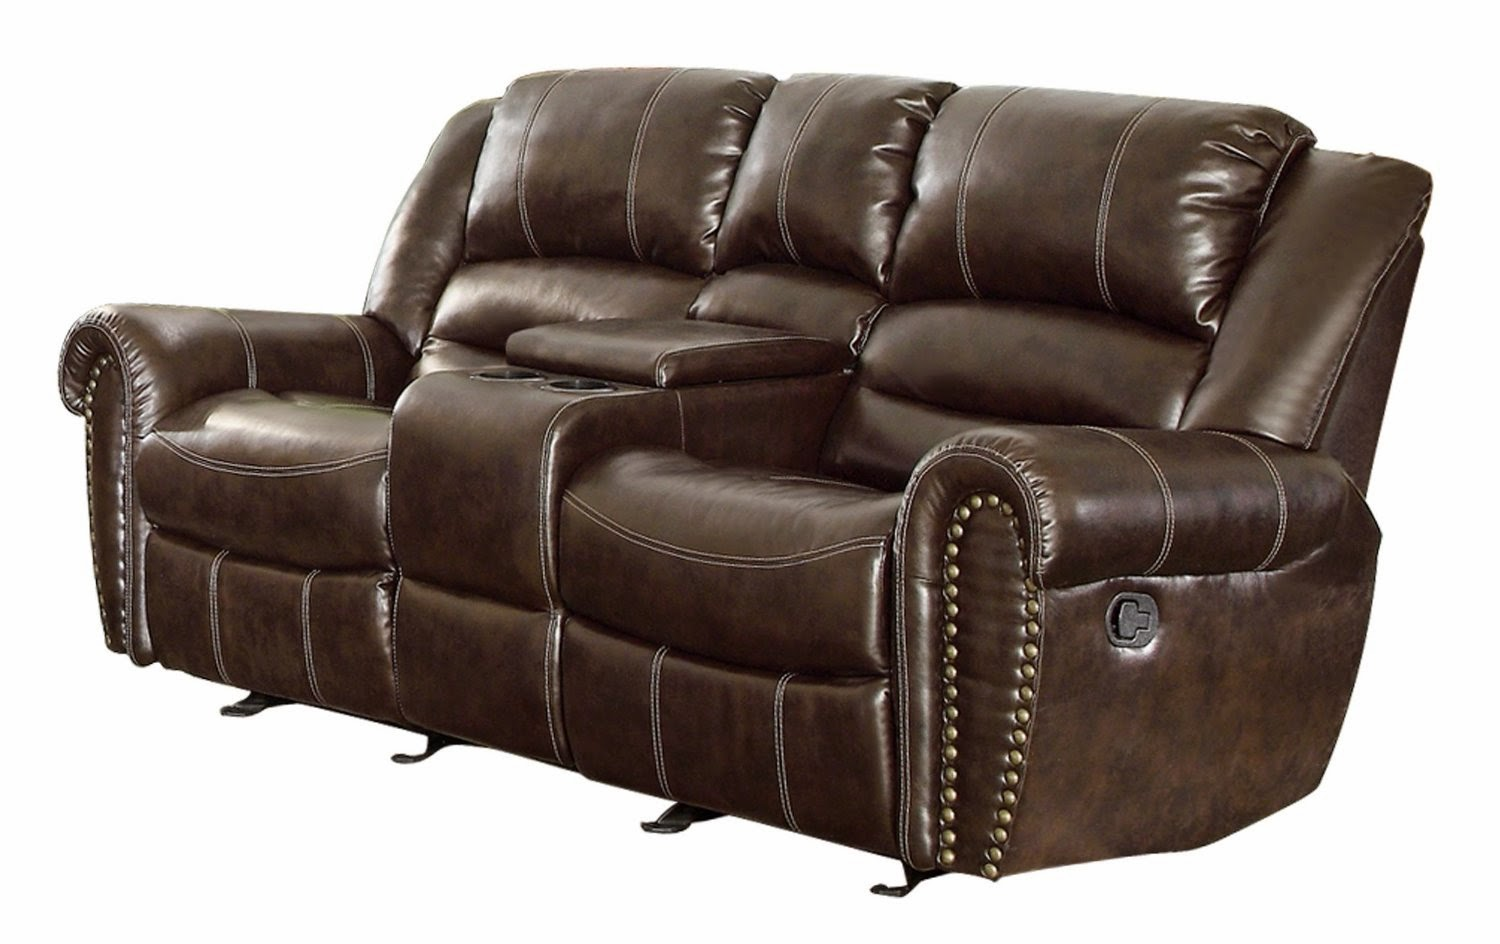 Cheap reclining sofas sale 2 seater leather recliner sofa sale Leather reclining loveseat